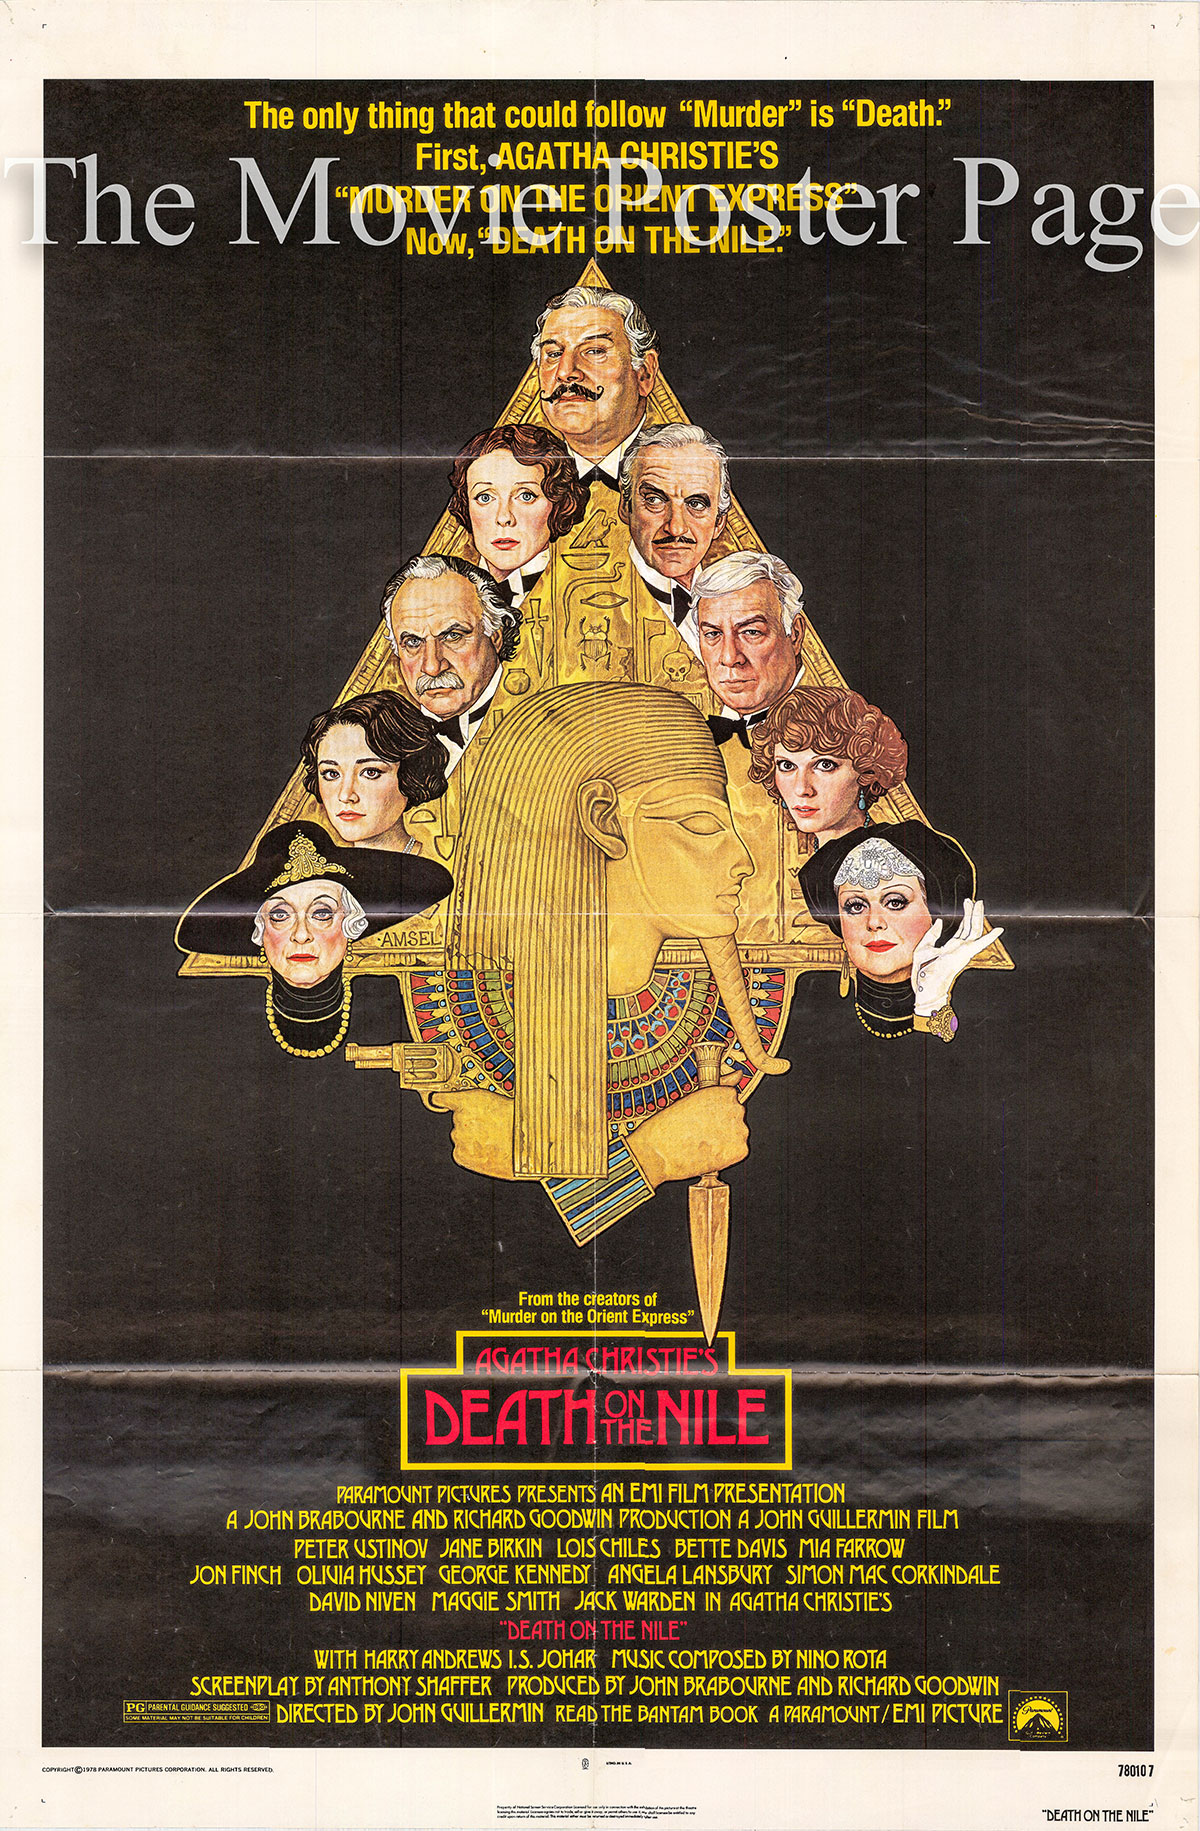 Pictured is a US one-sheet poster for the 1978 John Guillermin film Death on the Nile starring Peter Ustinov as Hercule Poirot.